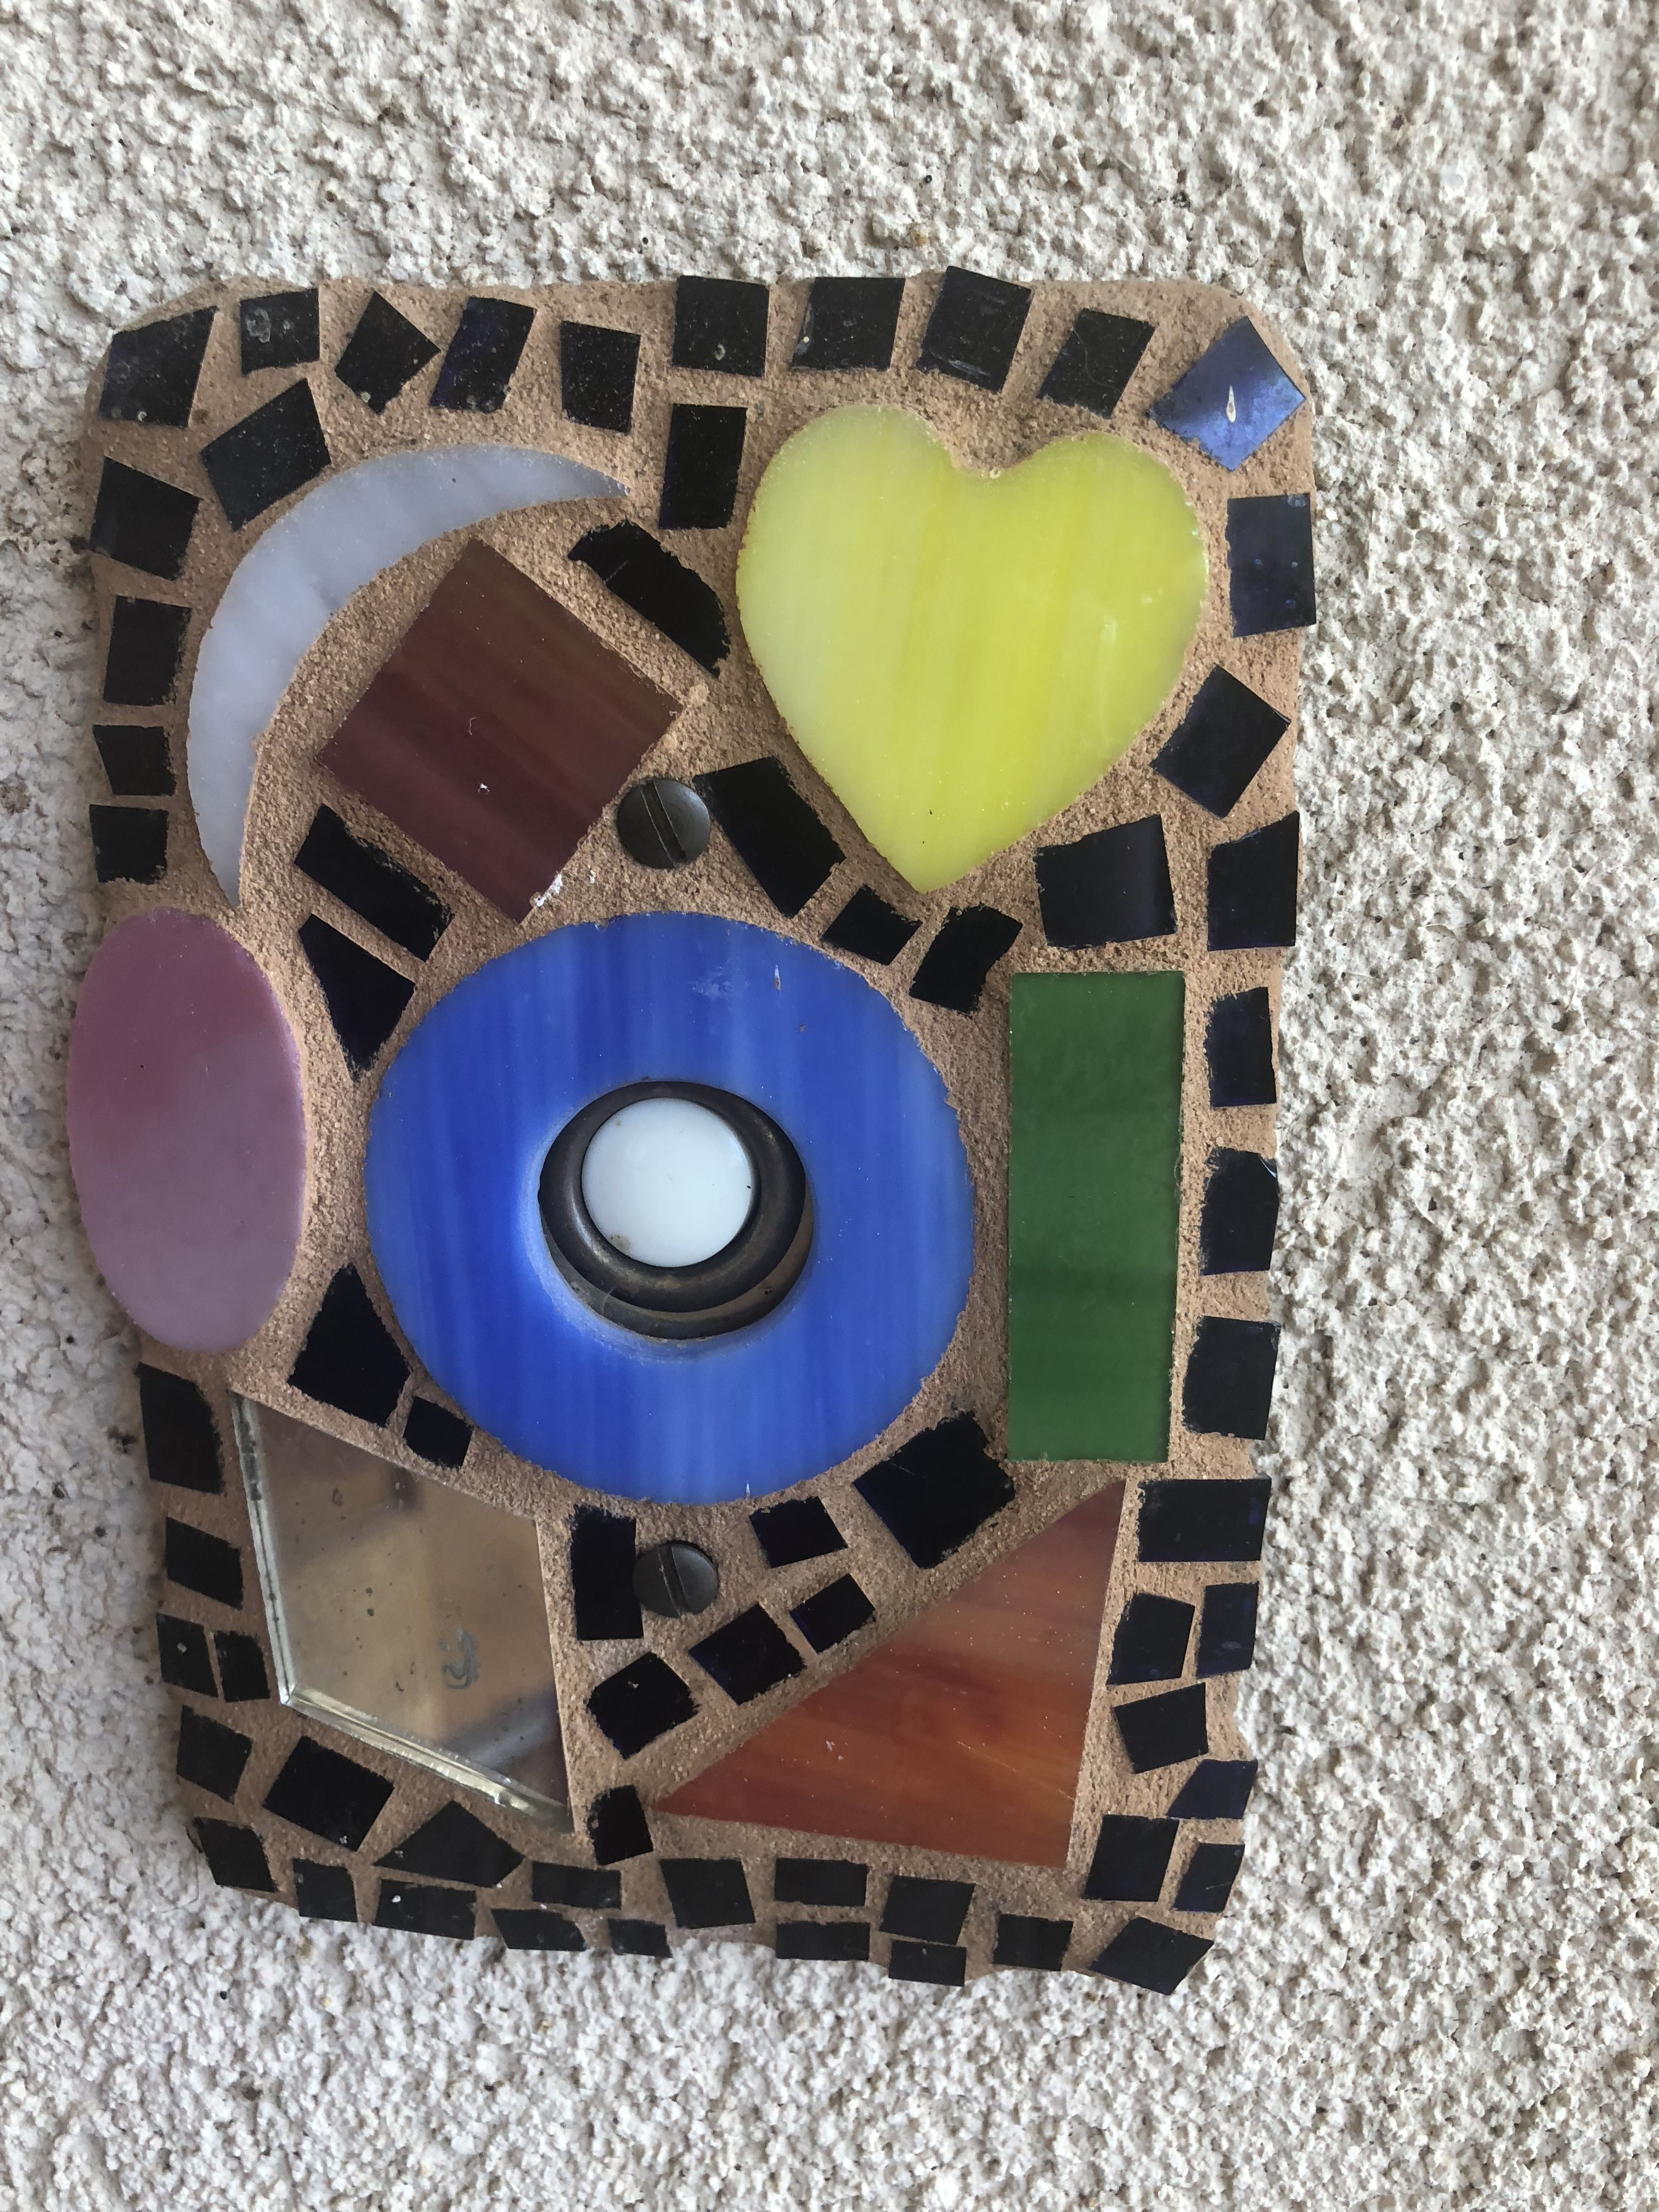 A Mosaic Exterior Doorbell Plate Or Easily Modified To Be An Interior Light Switch For Your Home